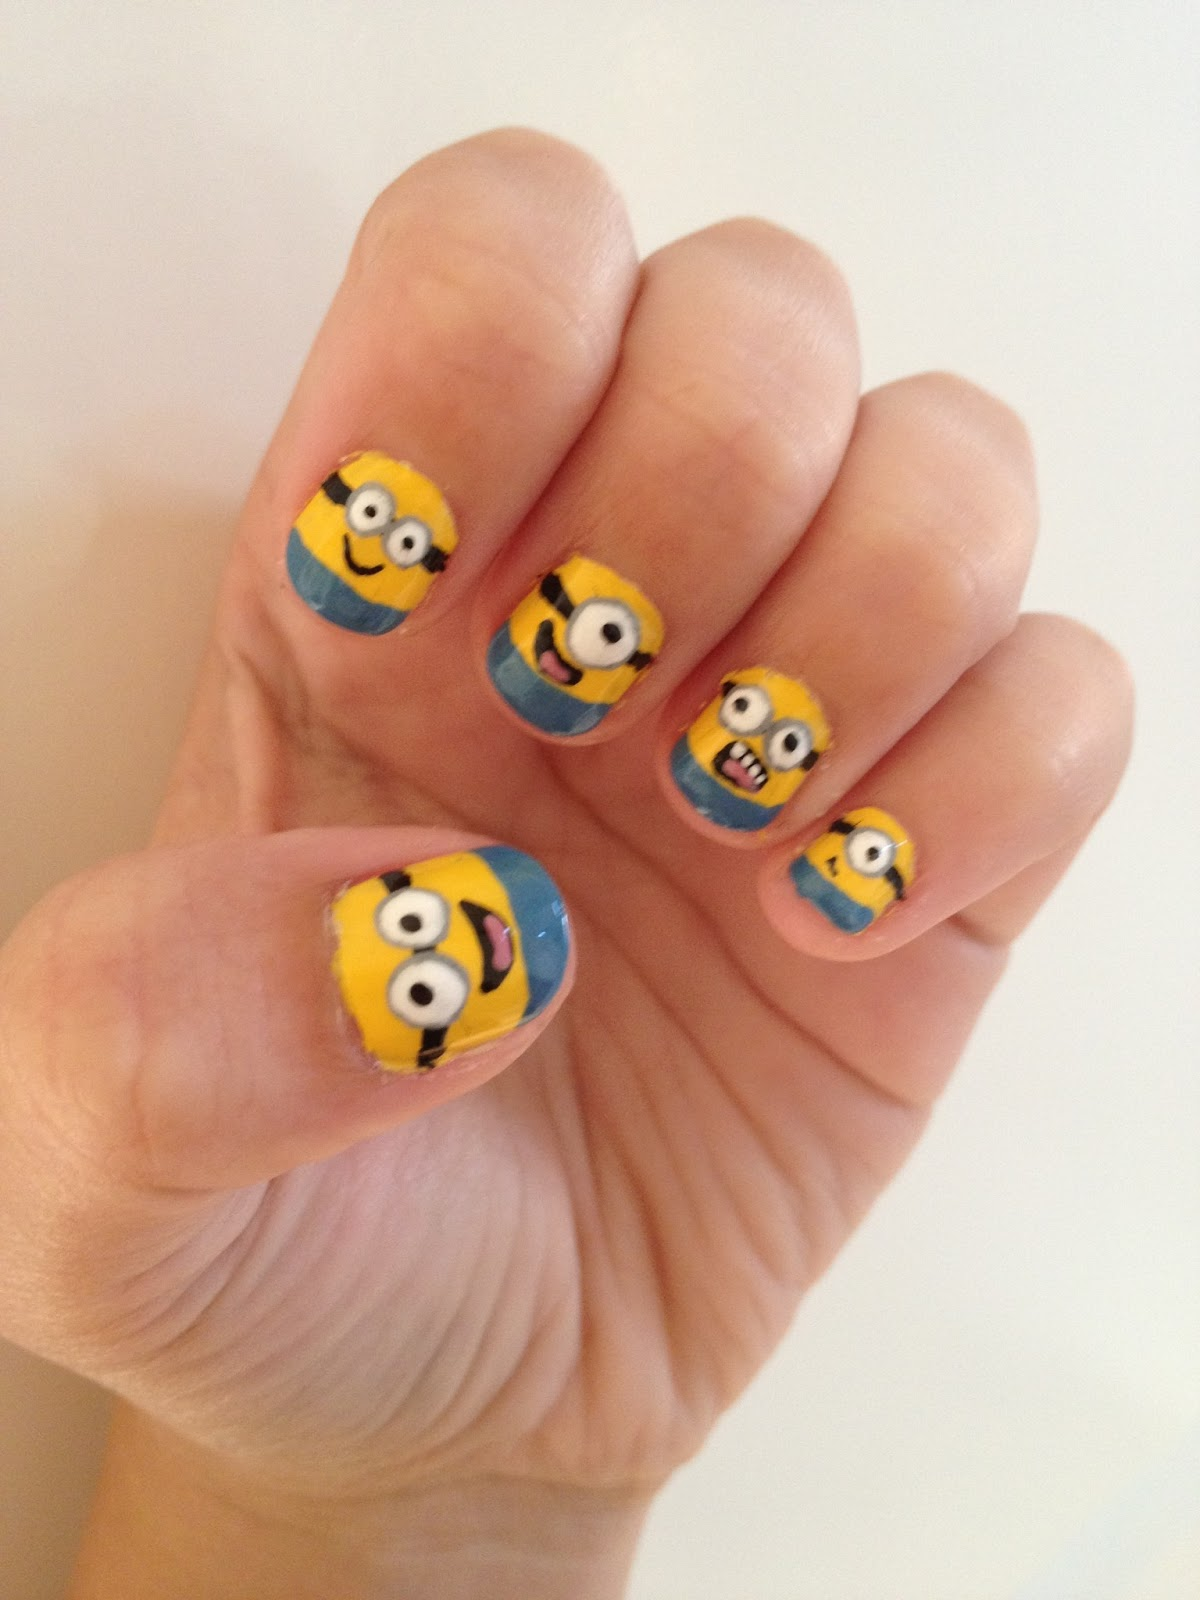 NAILed it.: Despicable Me Minion Nails!